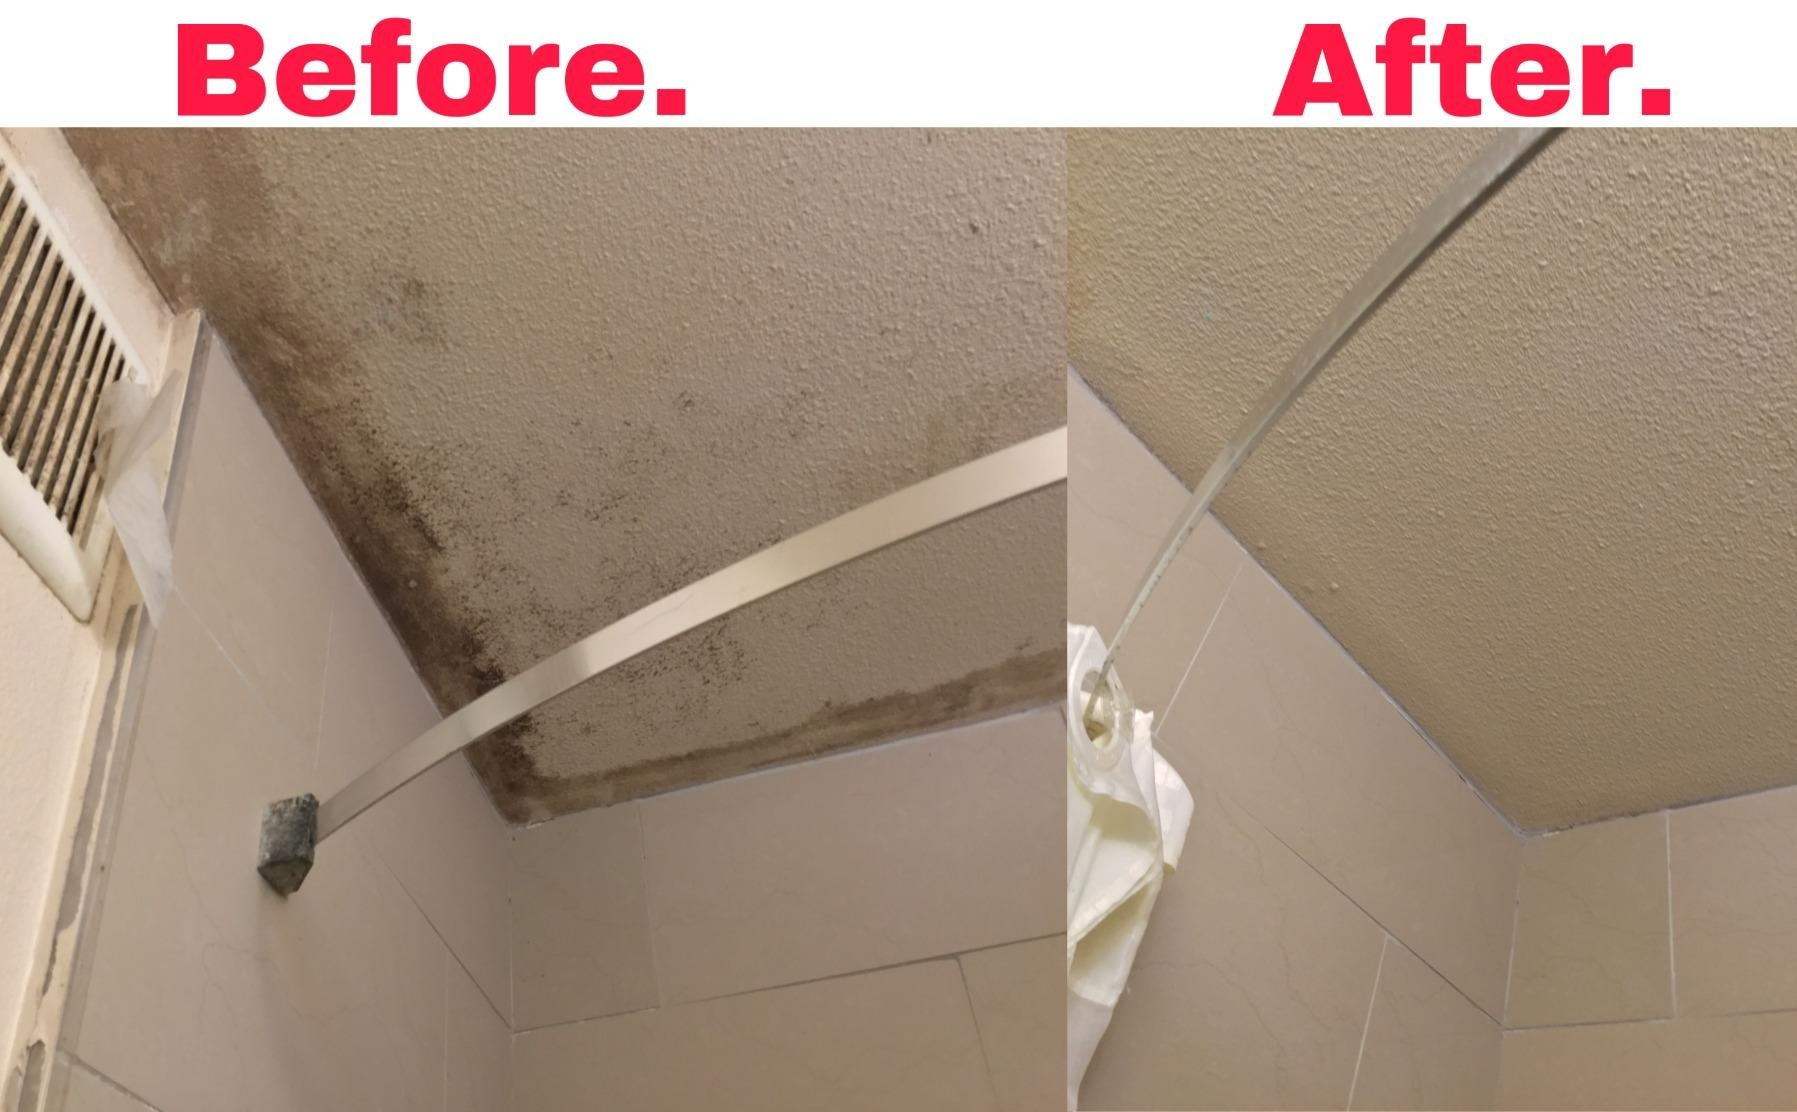 Reviewer's before and after photo of mildew on the ceiling of the bathroom